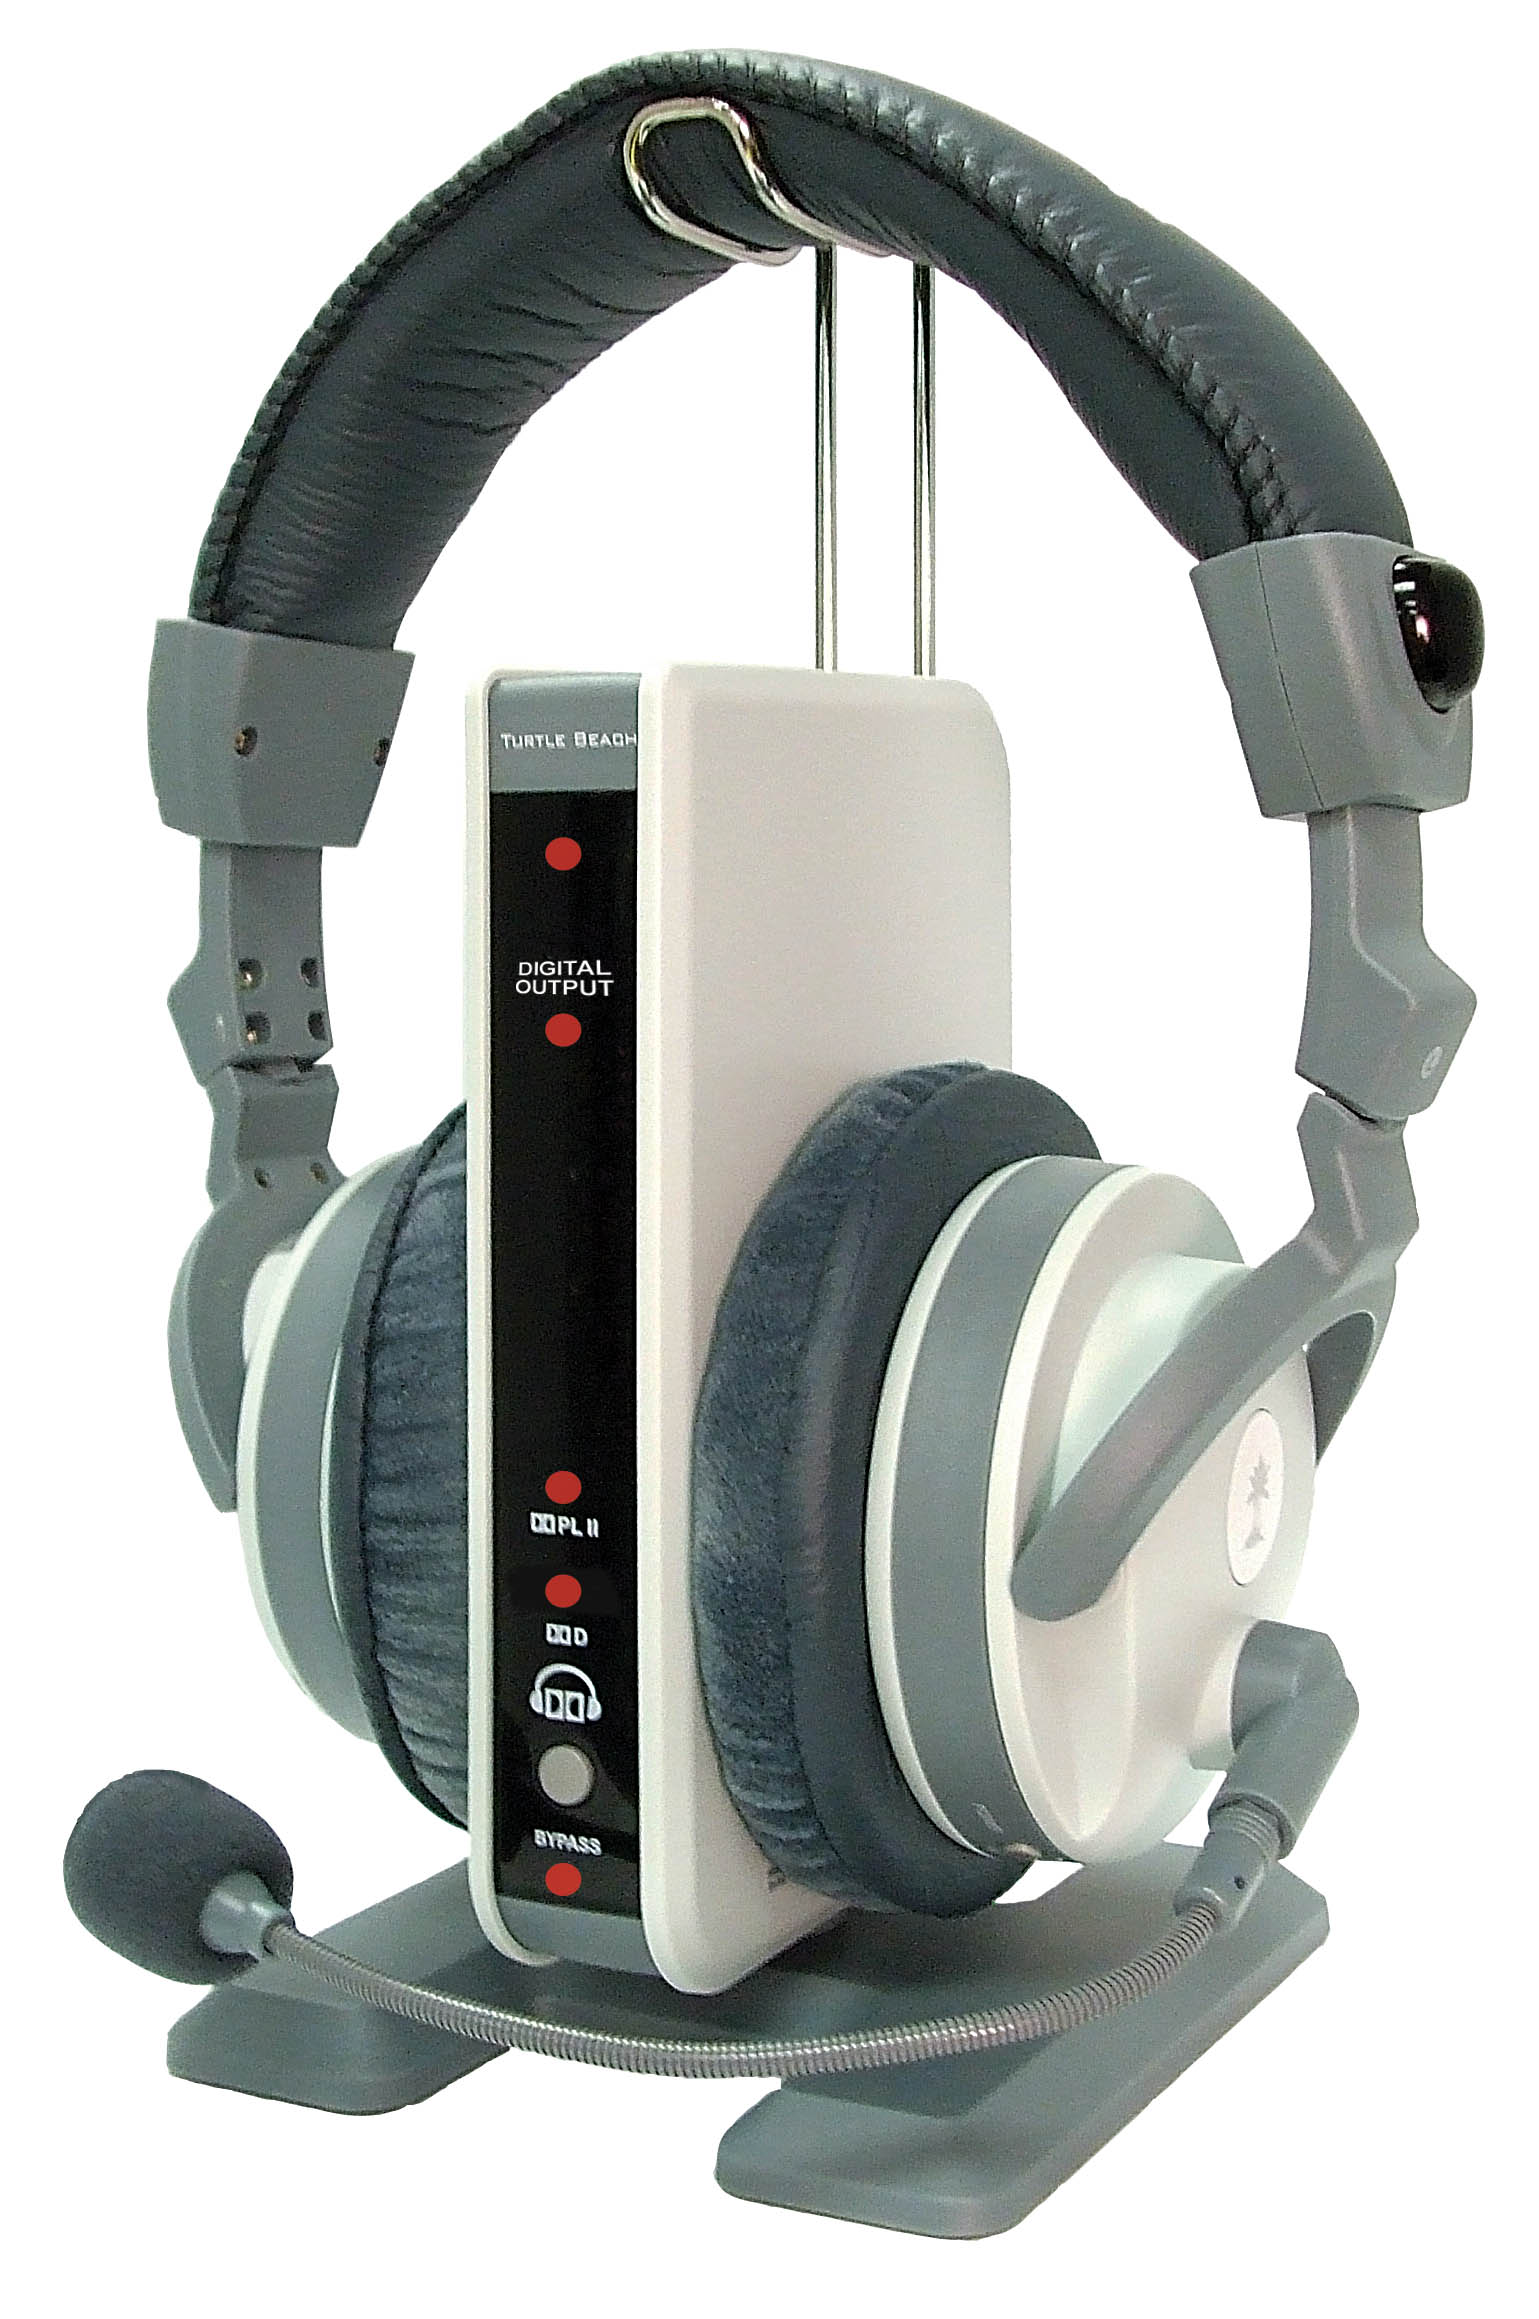 Turtle Beach Announces Ear Force X4 Wireless Xbox 360 Headphones With Dolby 51 Channel Surround